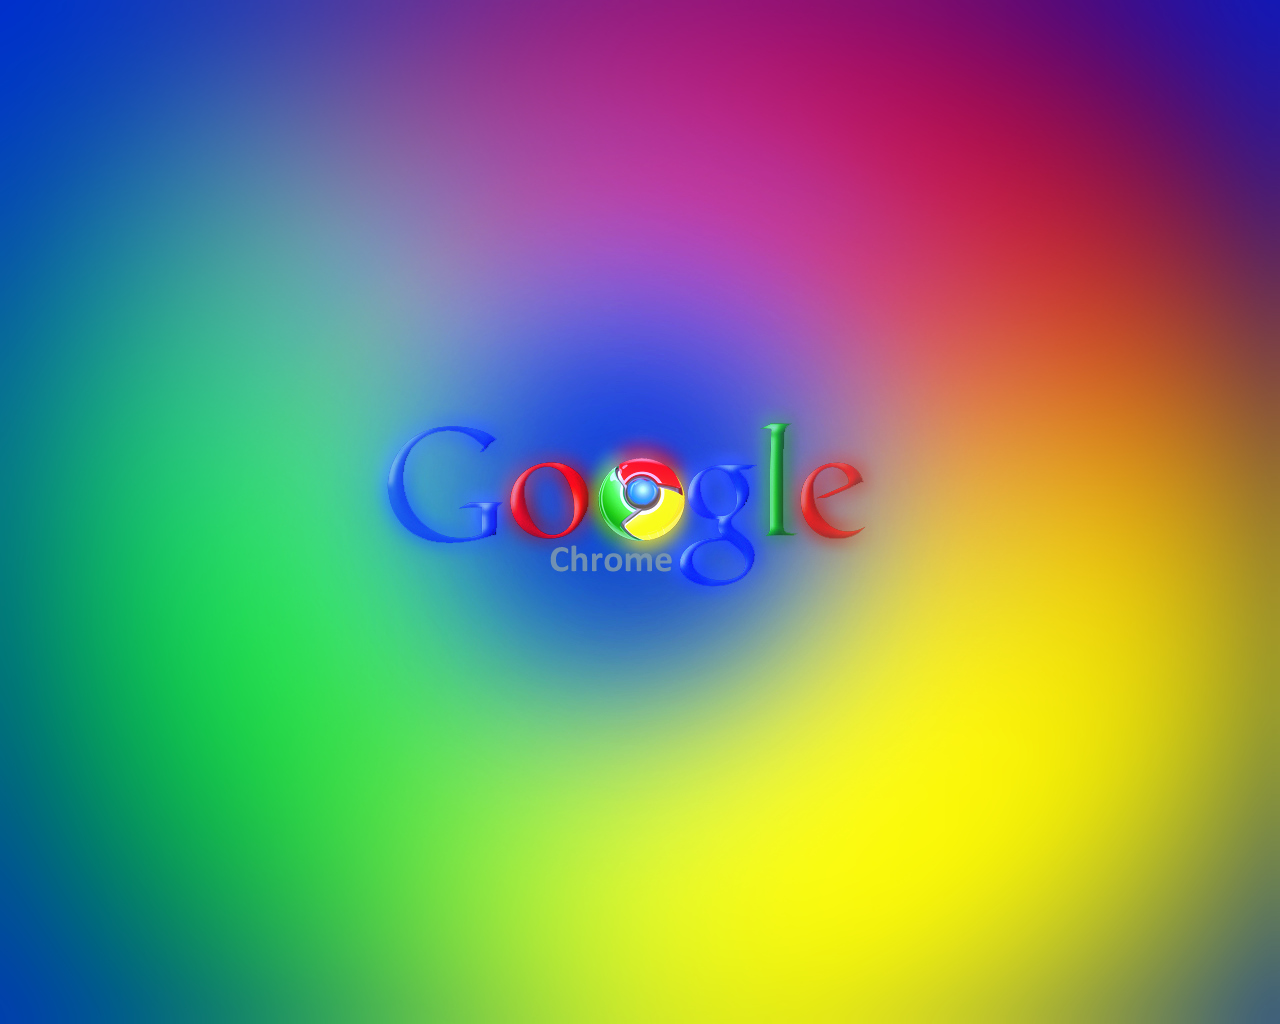 Google Chrome Logo HD Wallpapers Full HD Wallpapers 1280x1024